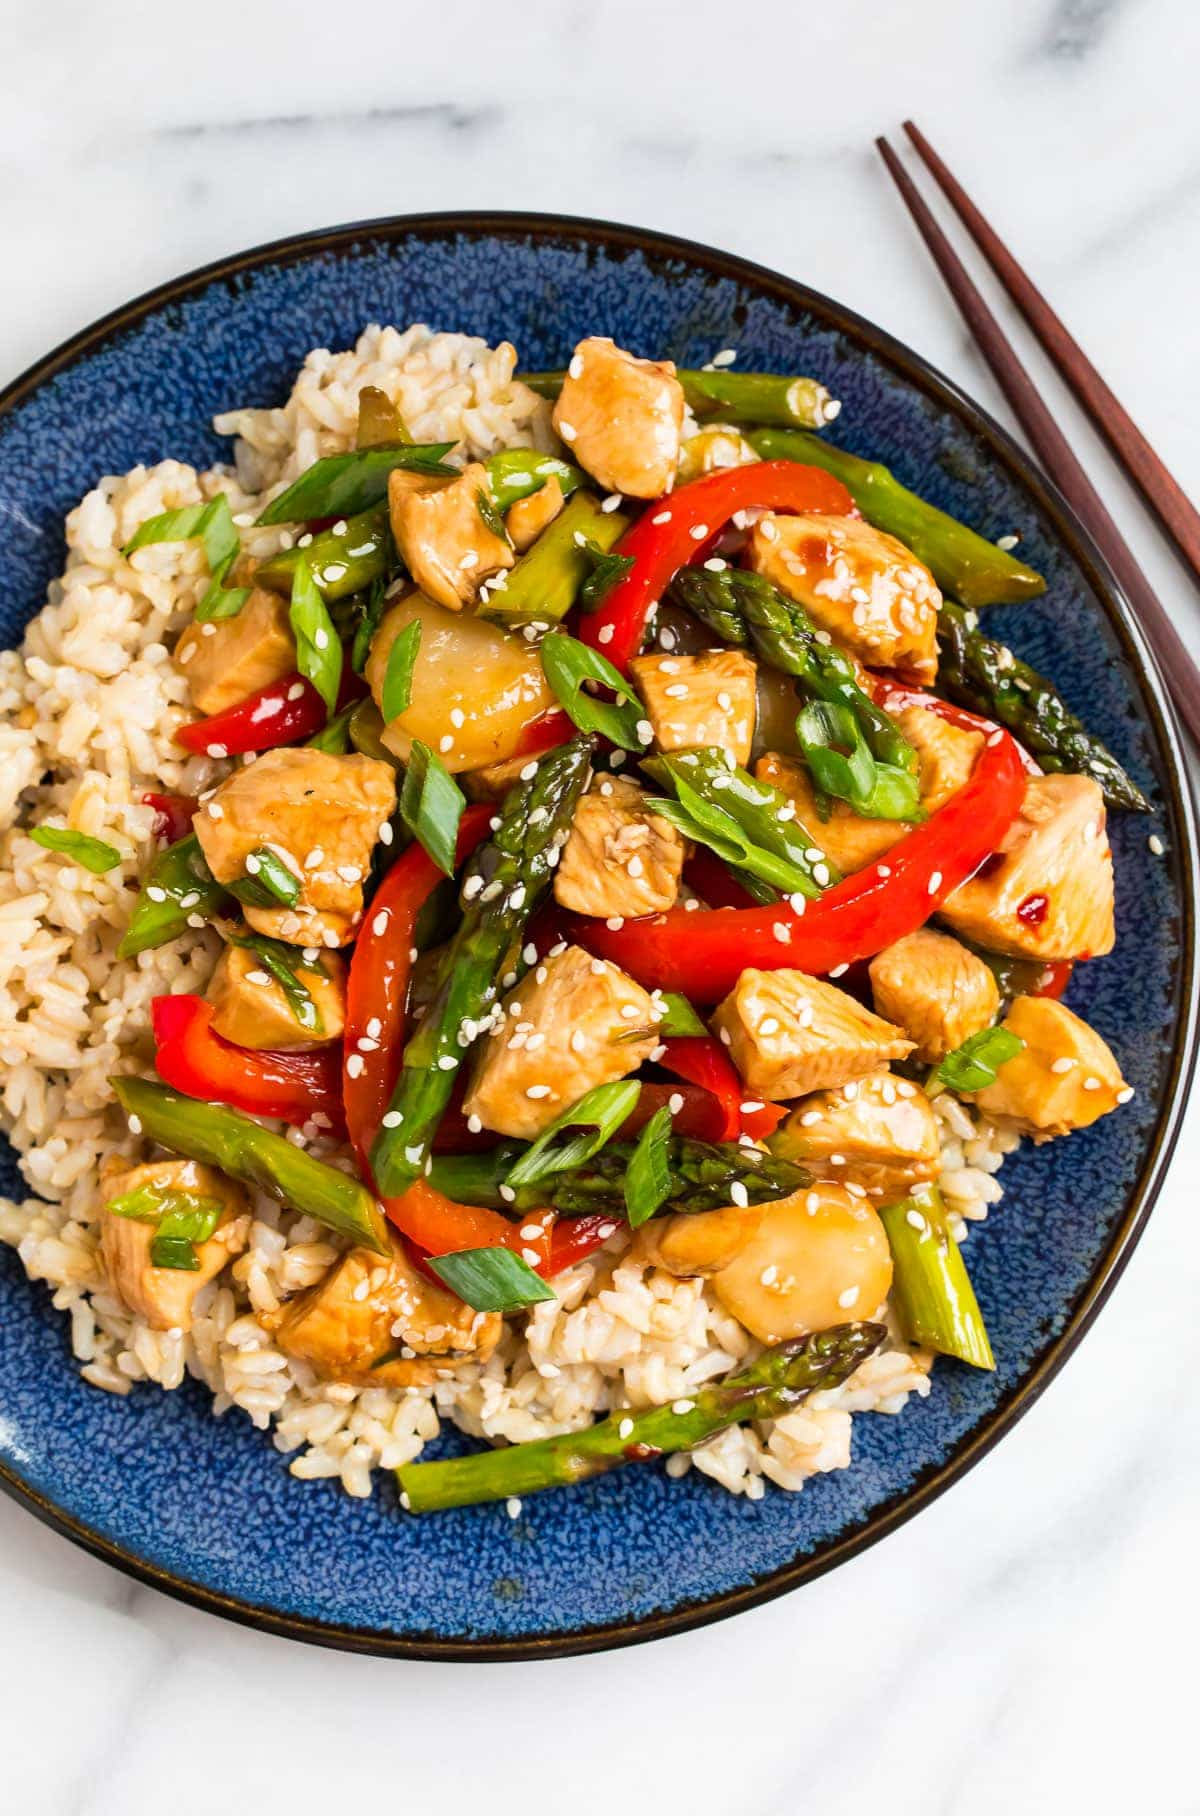 Teriyaki Chicken Stir Fry Easy Healthy Teriyaki Chicken Recipe